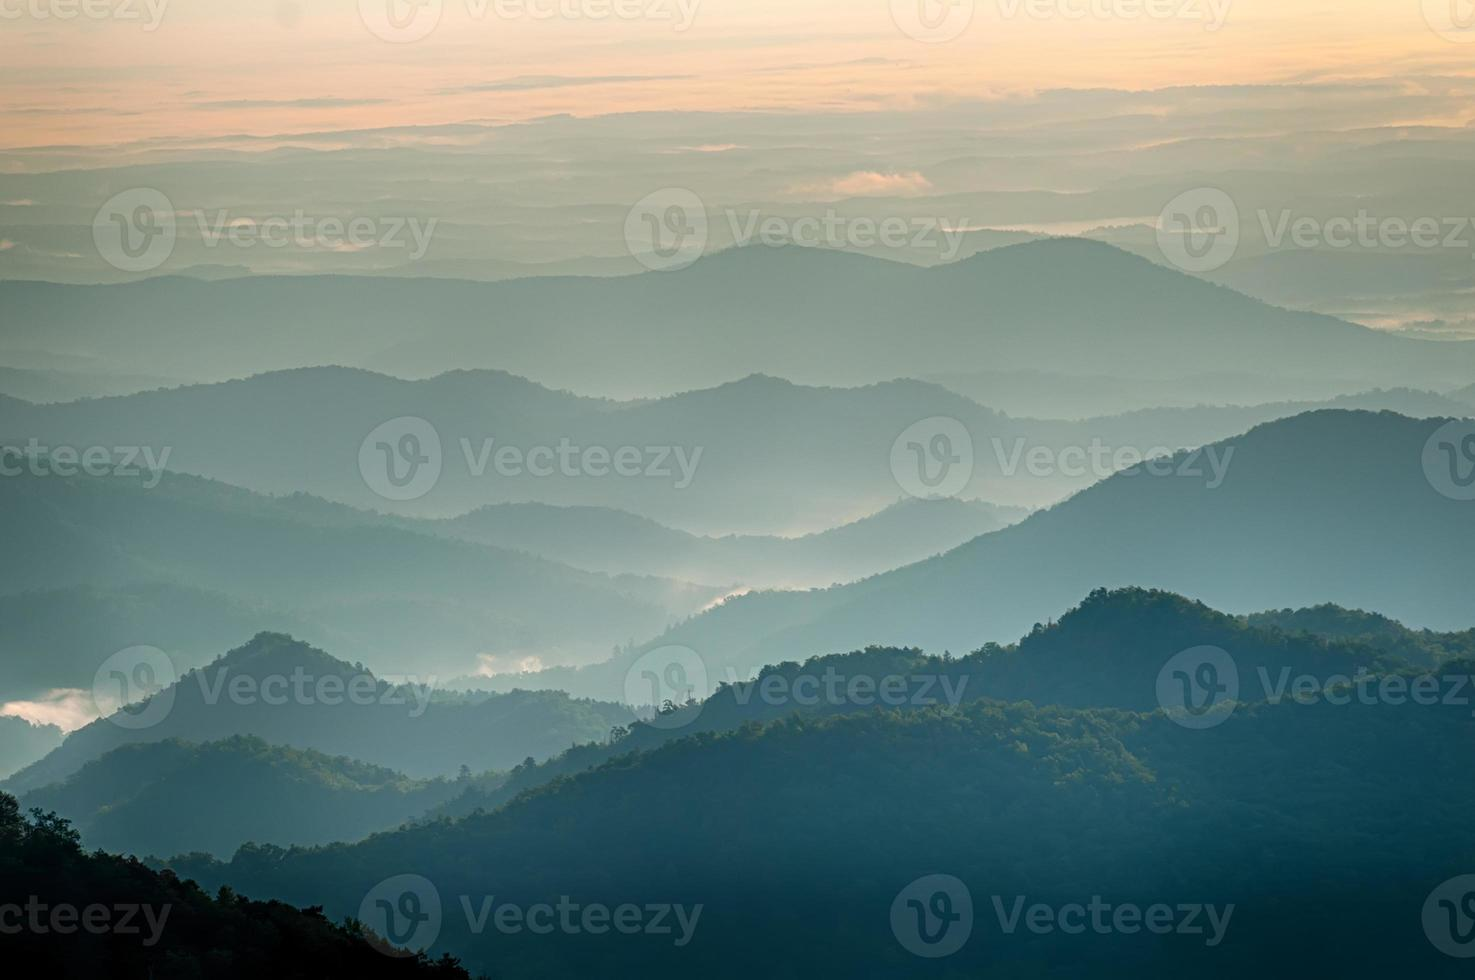 The simple layers of the Smokies at sunset photo